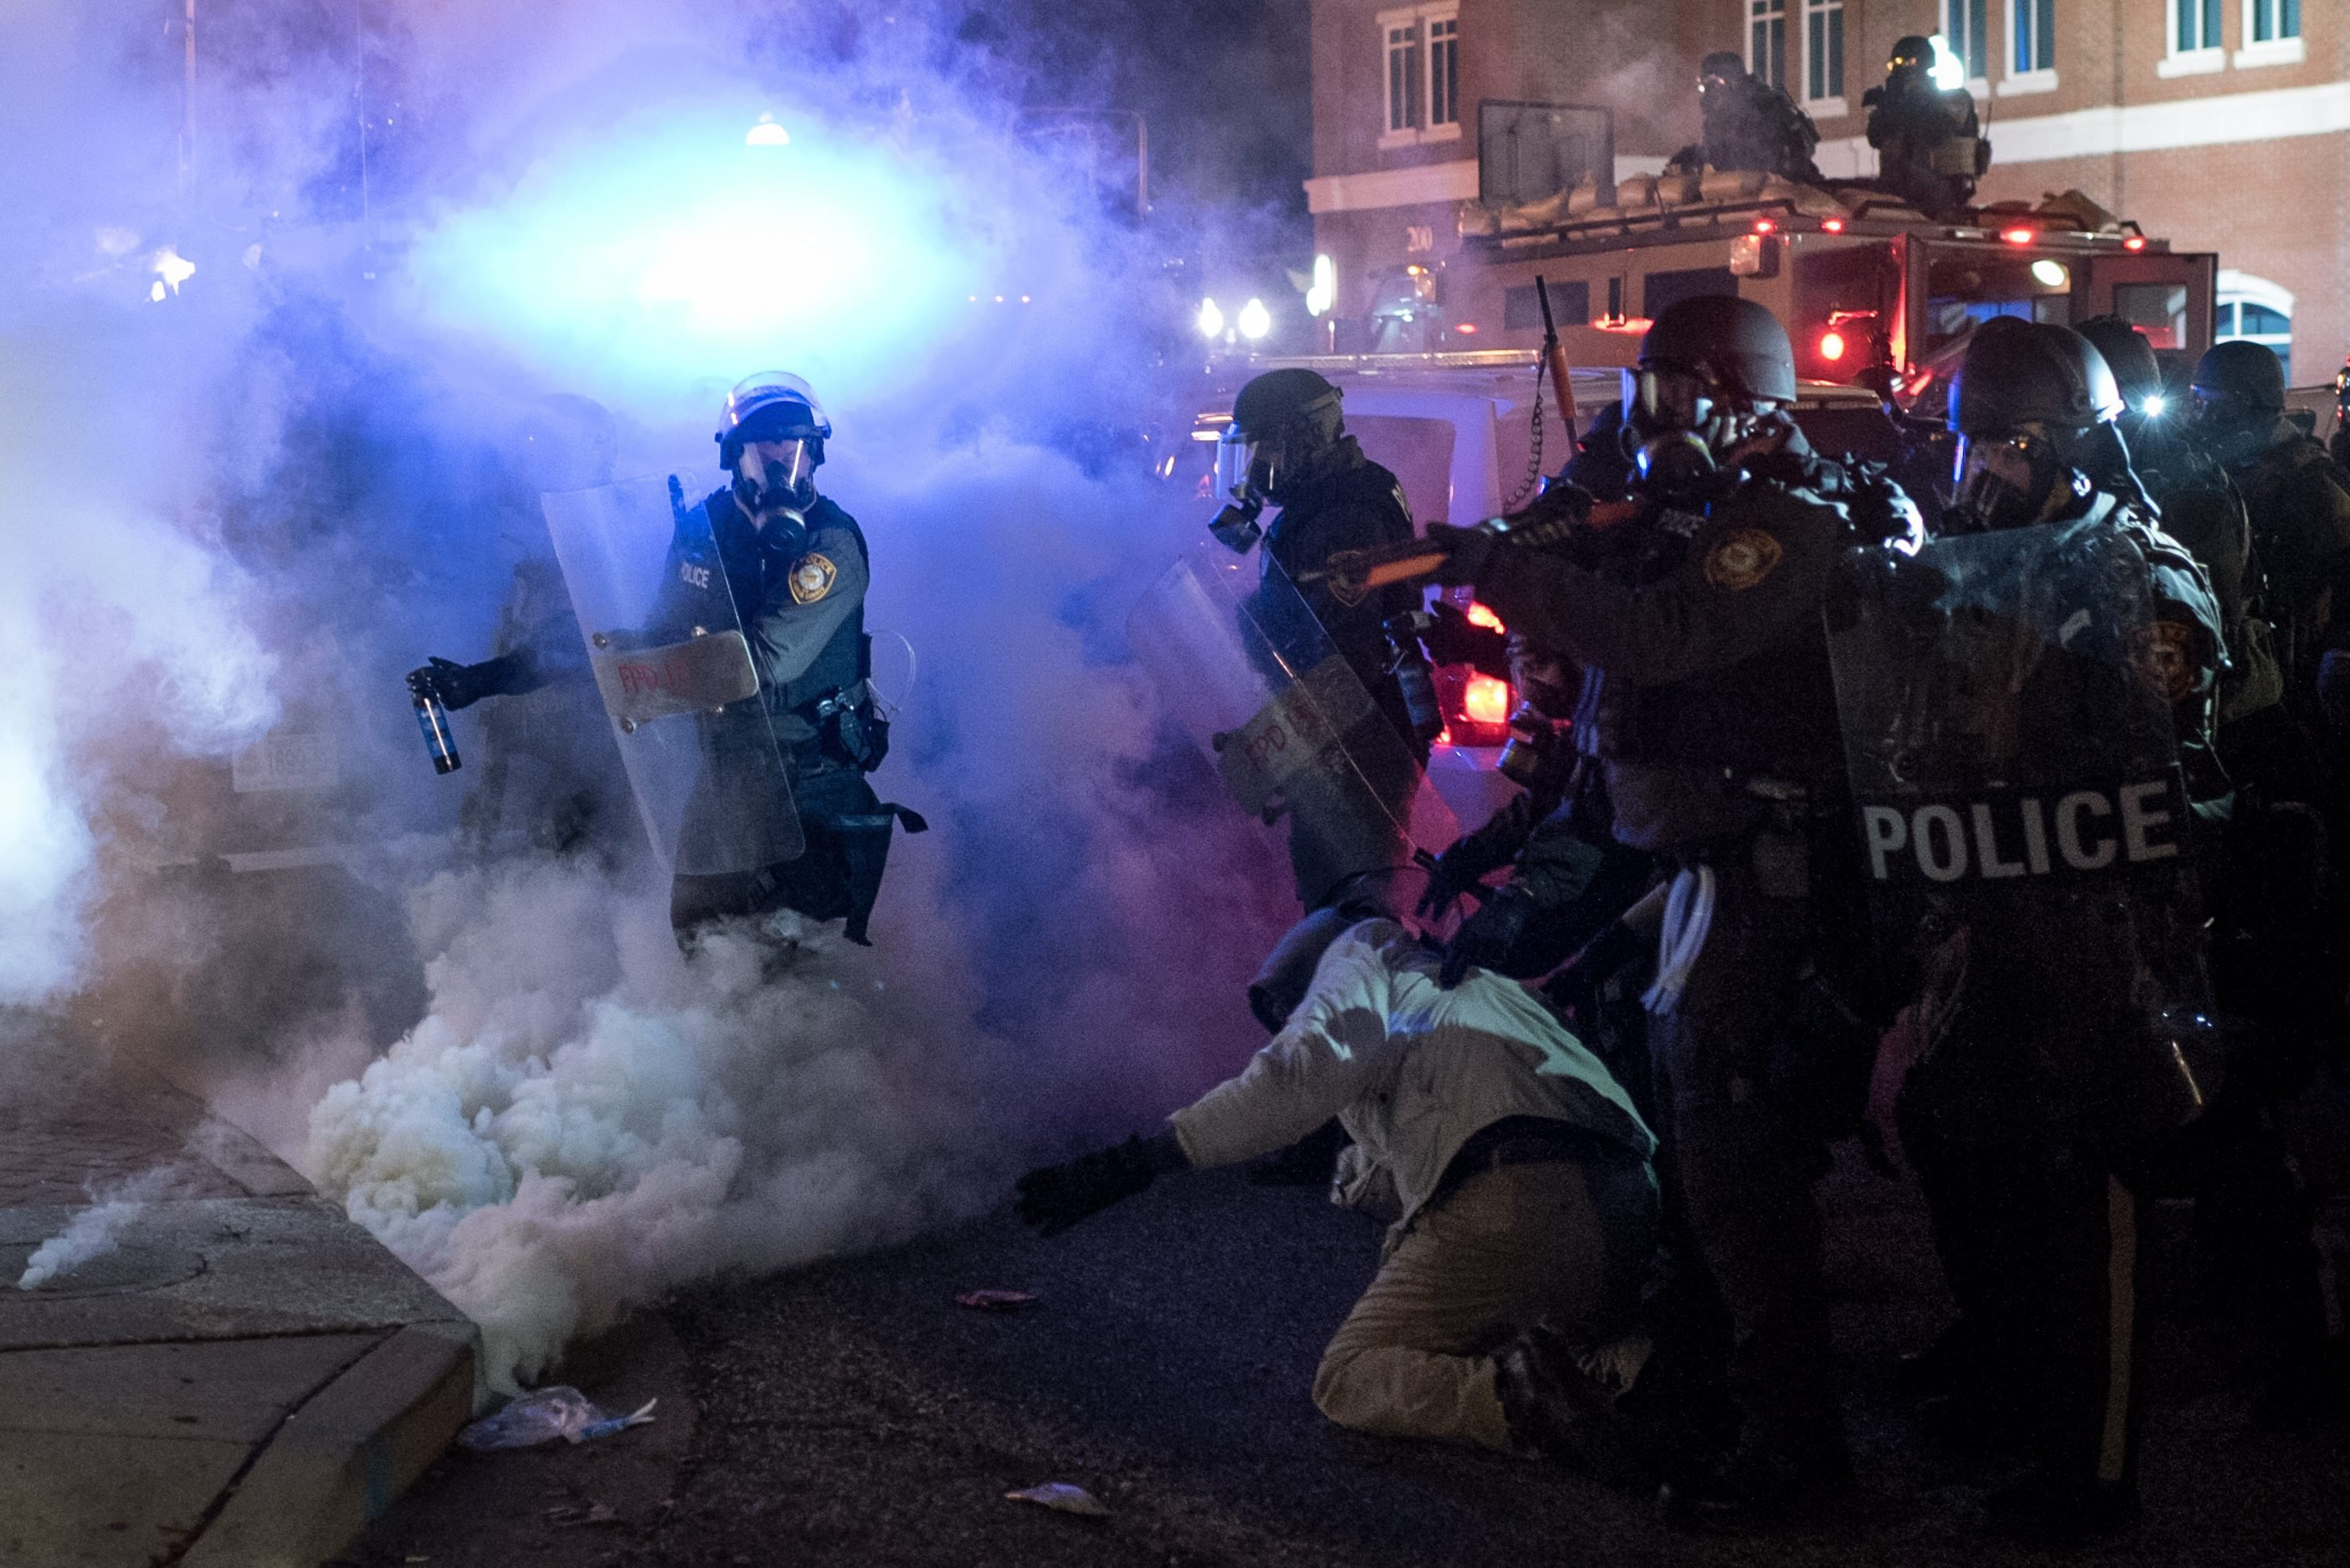 Riot policemen clash with protesters in Ferguson Mo. on Nov. 24, 2014.